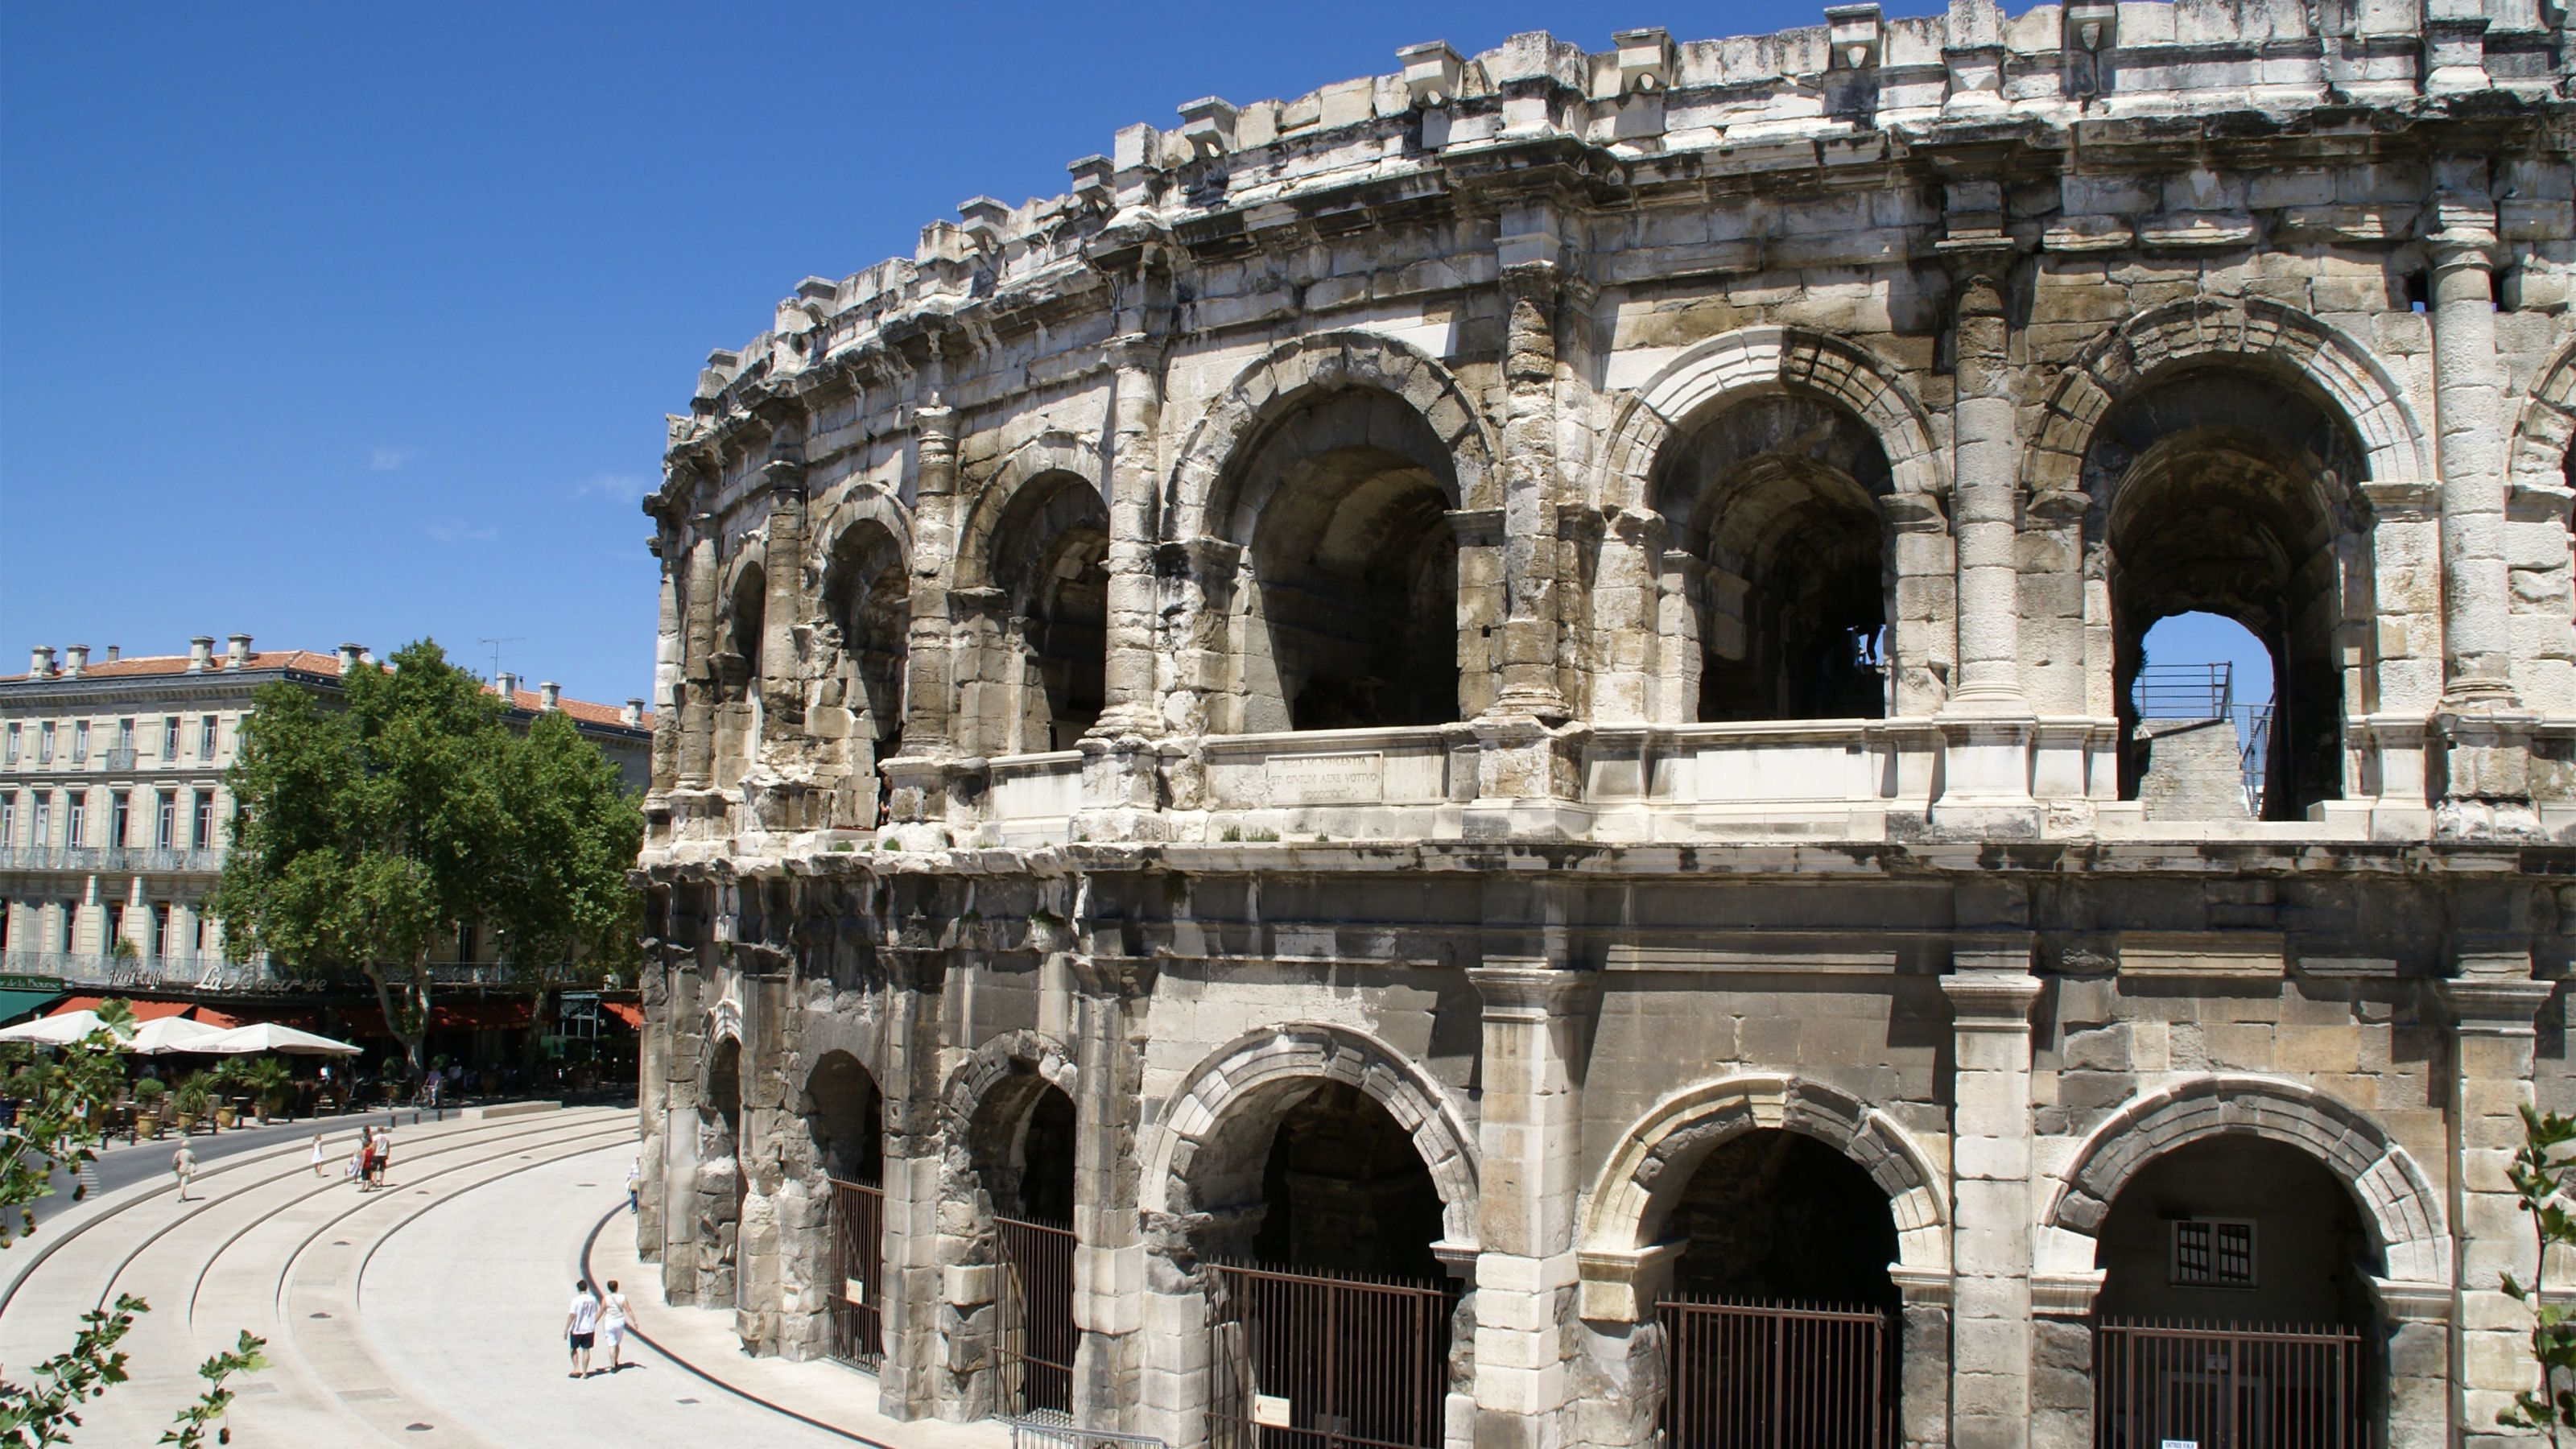 outside of the Arena of Nîmes in France